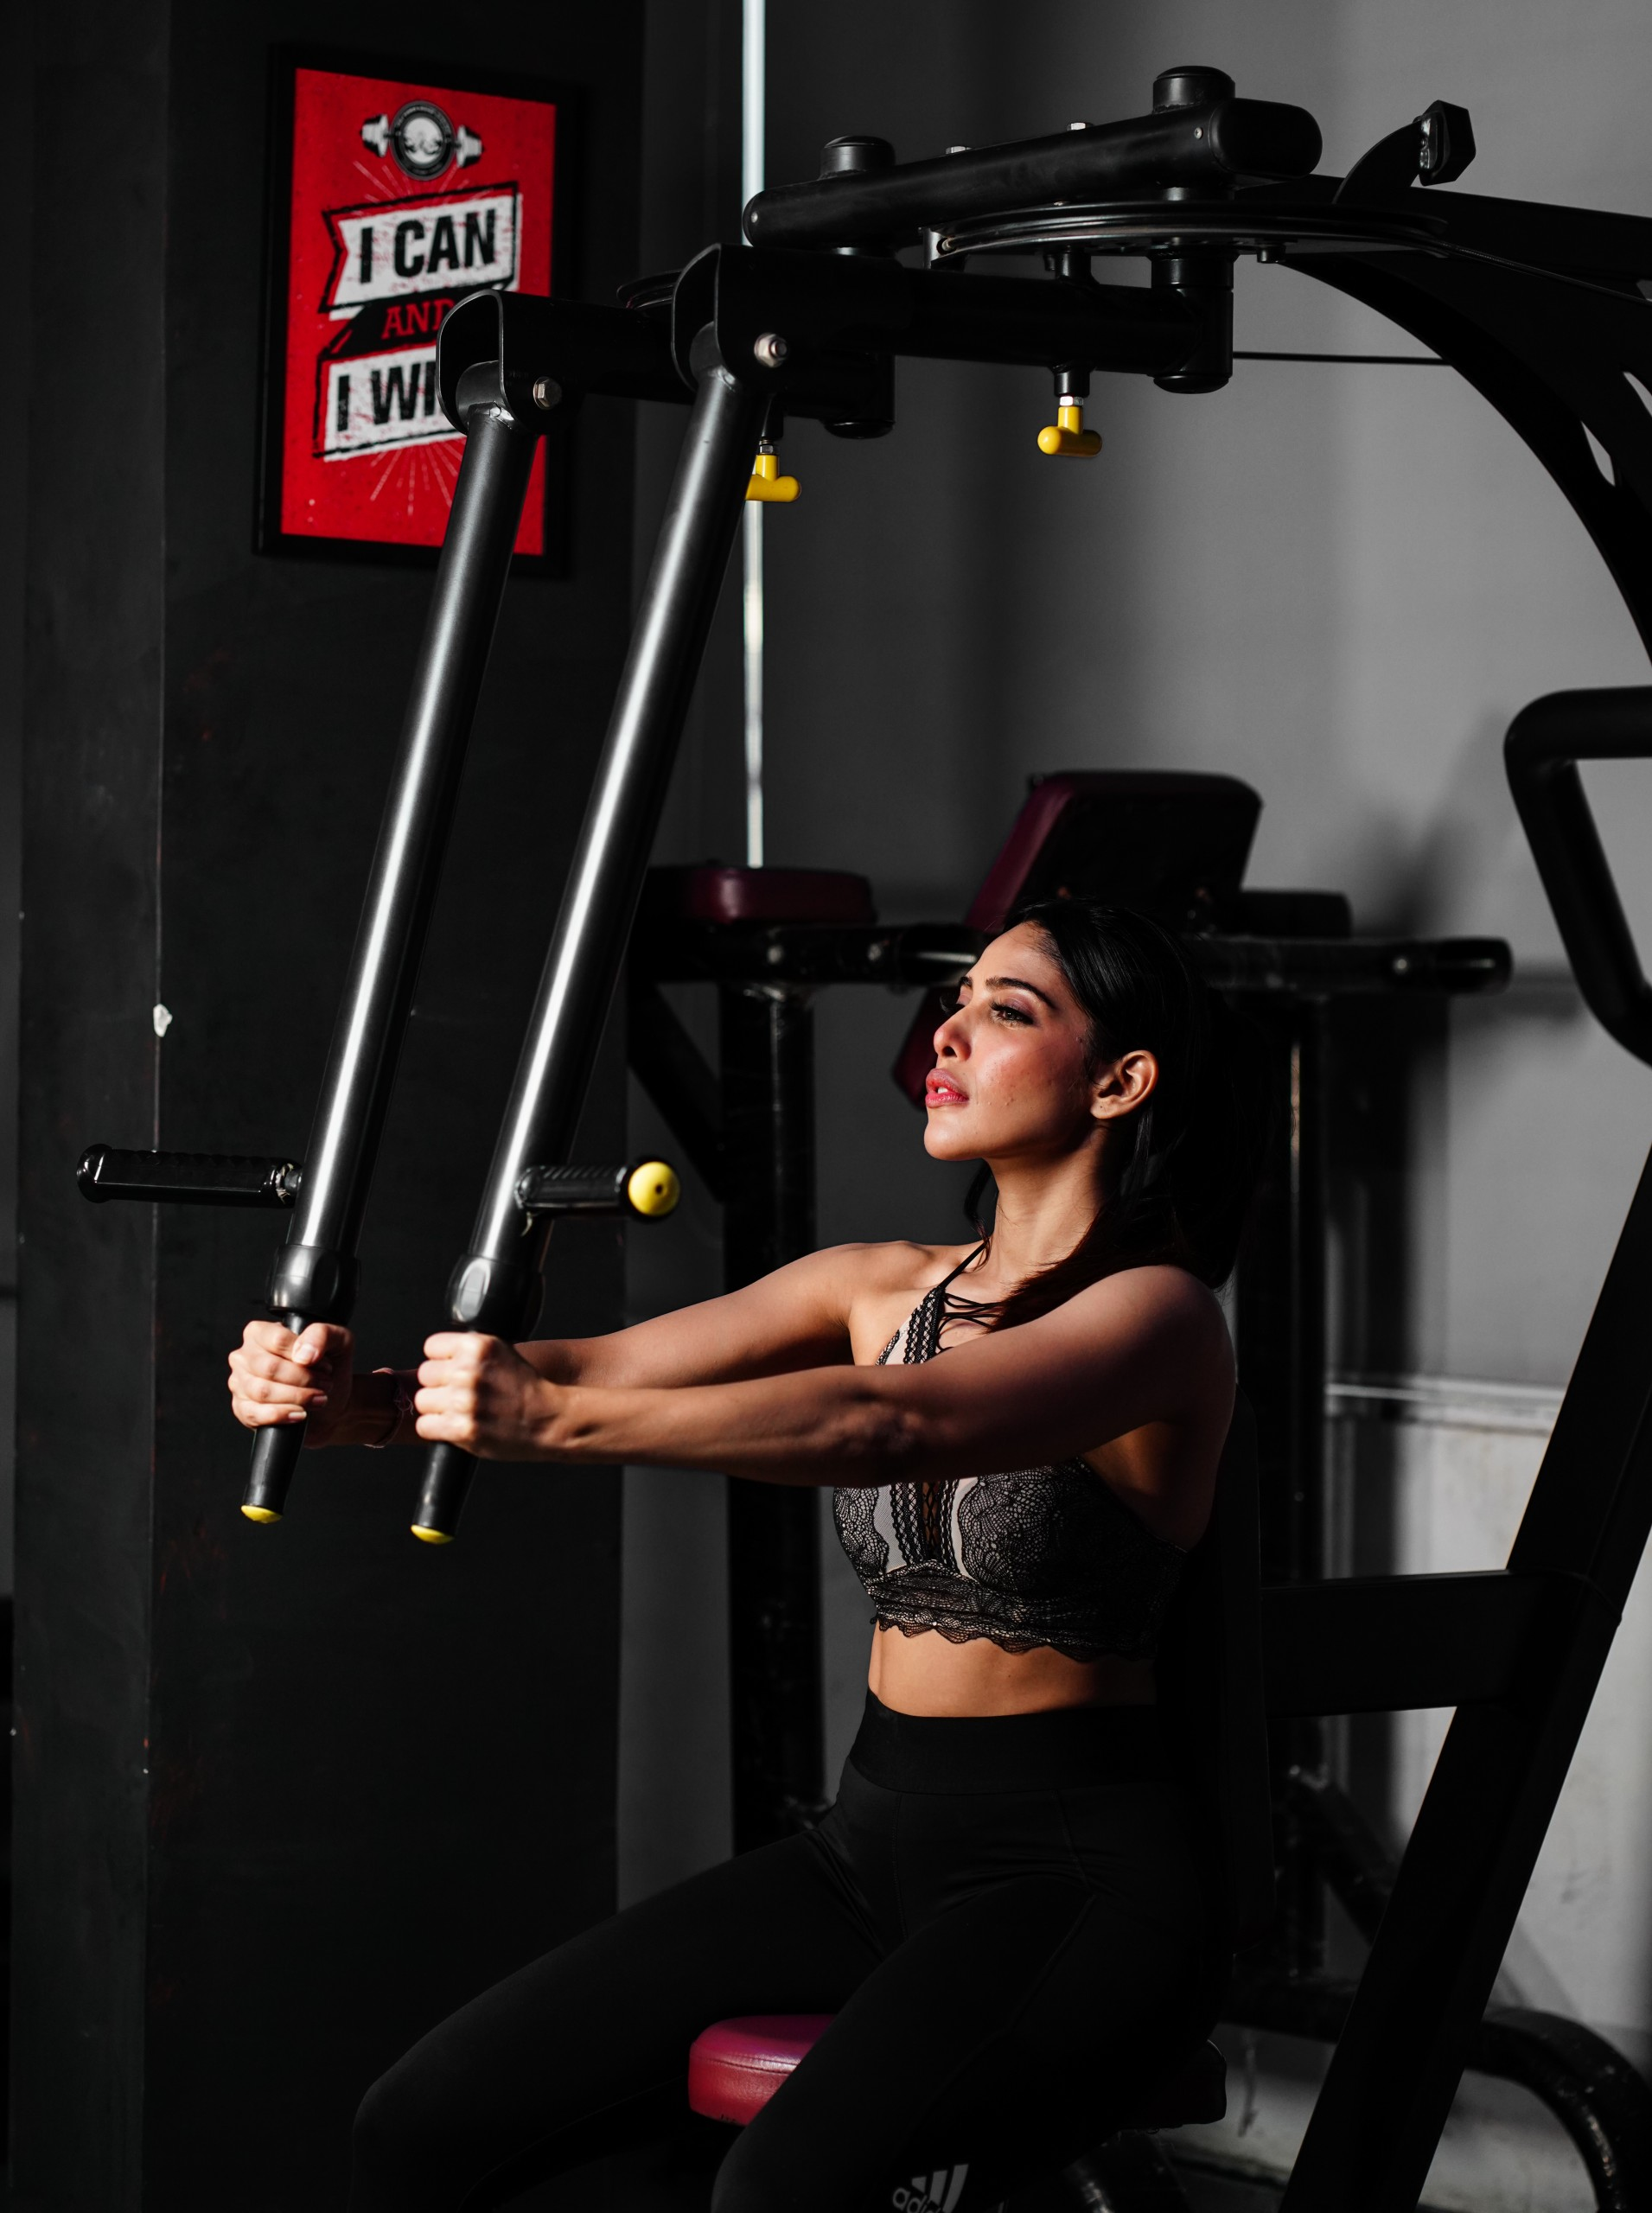 A Fit Woman in the Gym